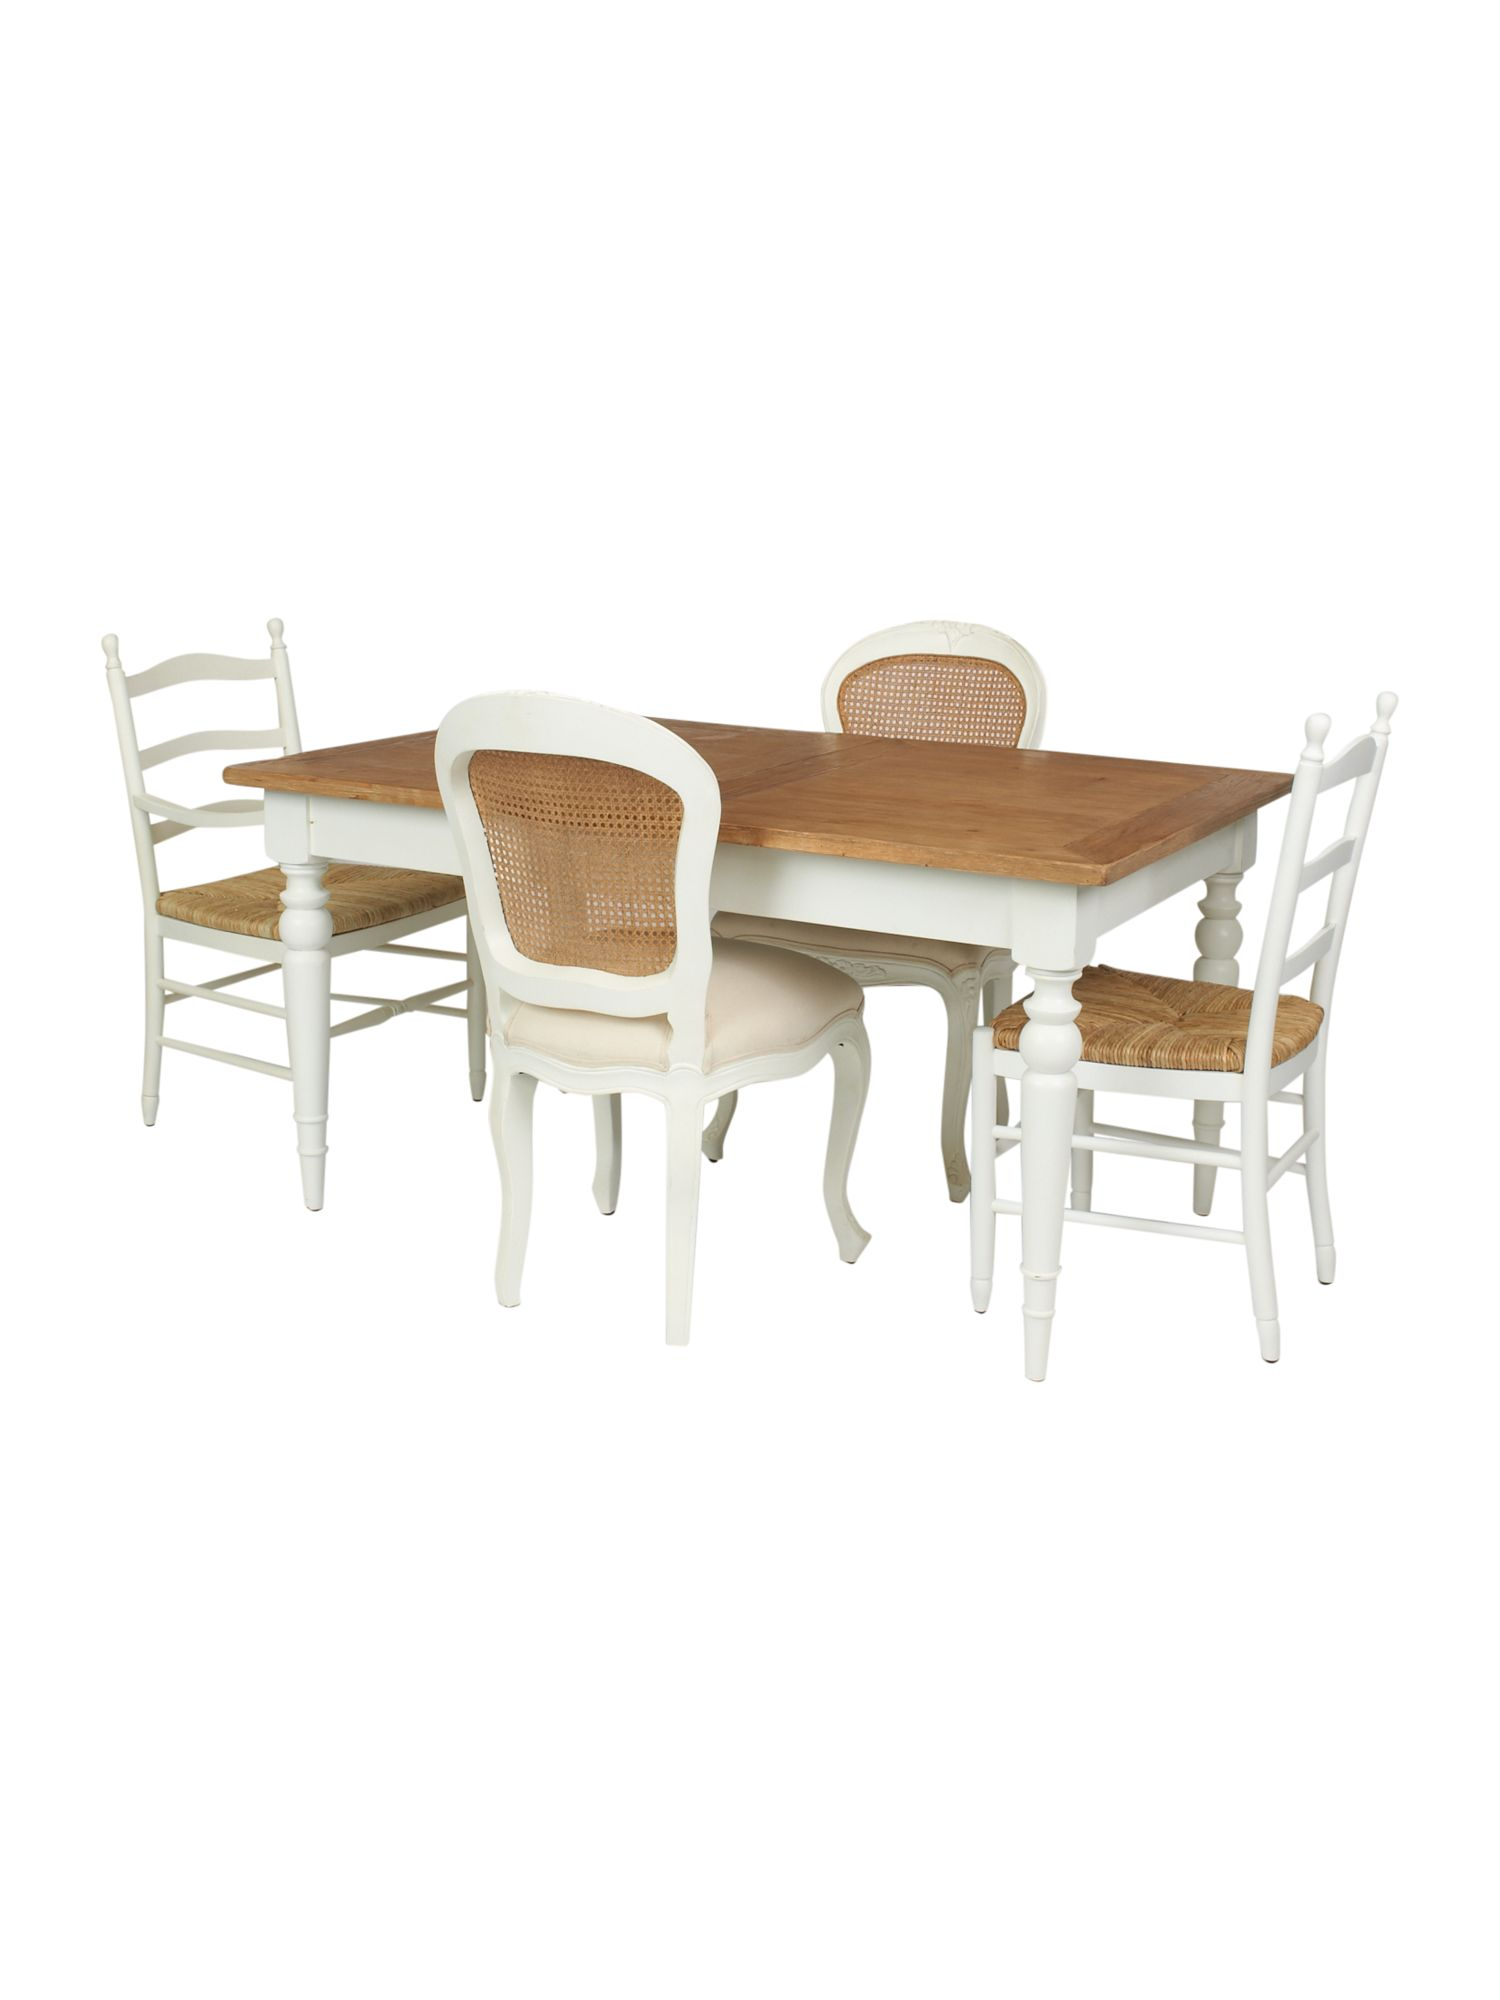 House Of Fraser Dining Room Furniture Shabby Chic Addison Carver Dining Chair Pair House Of Fraser